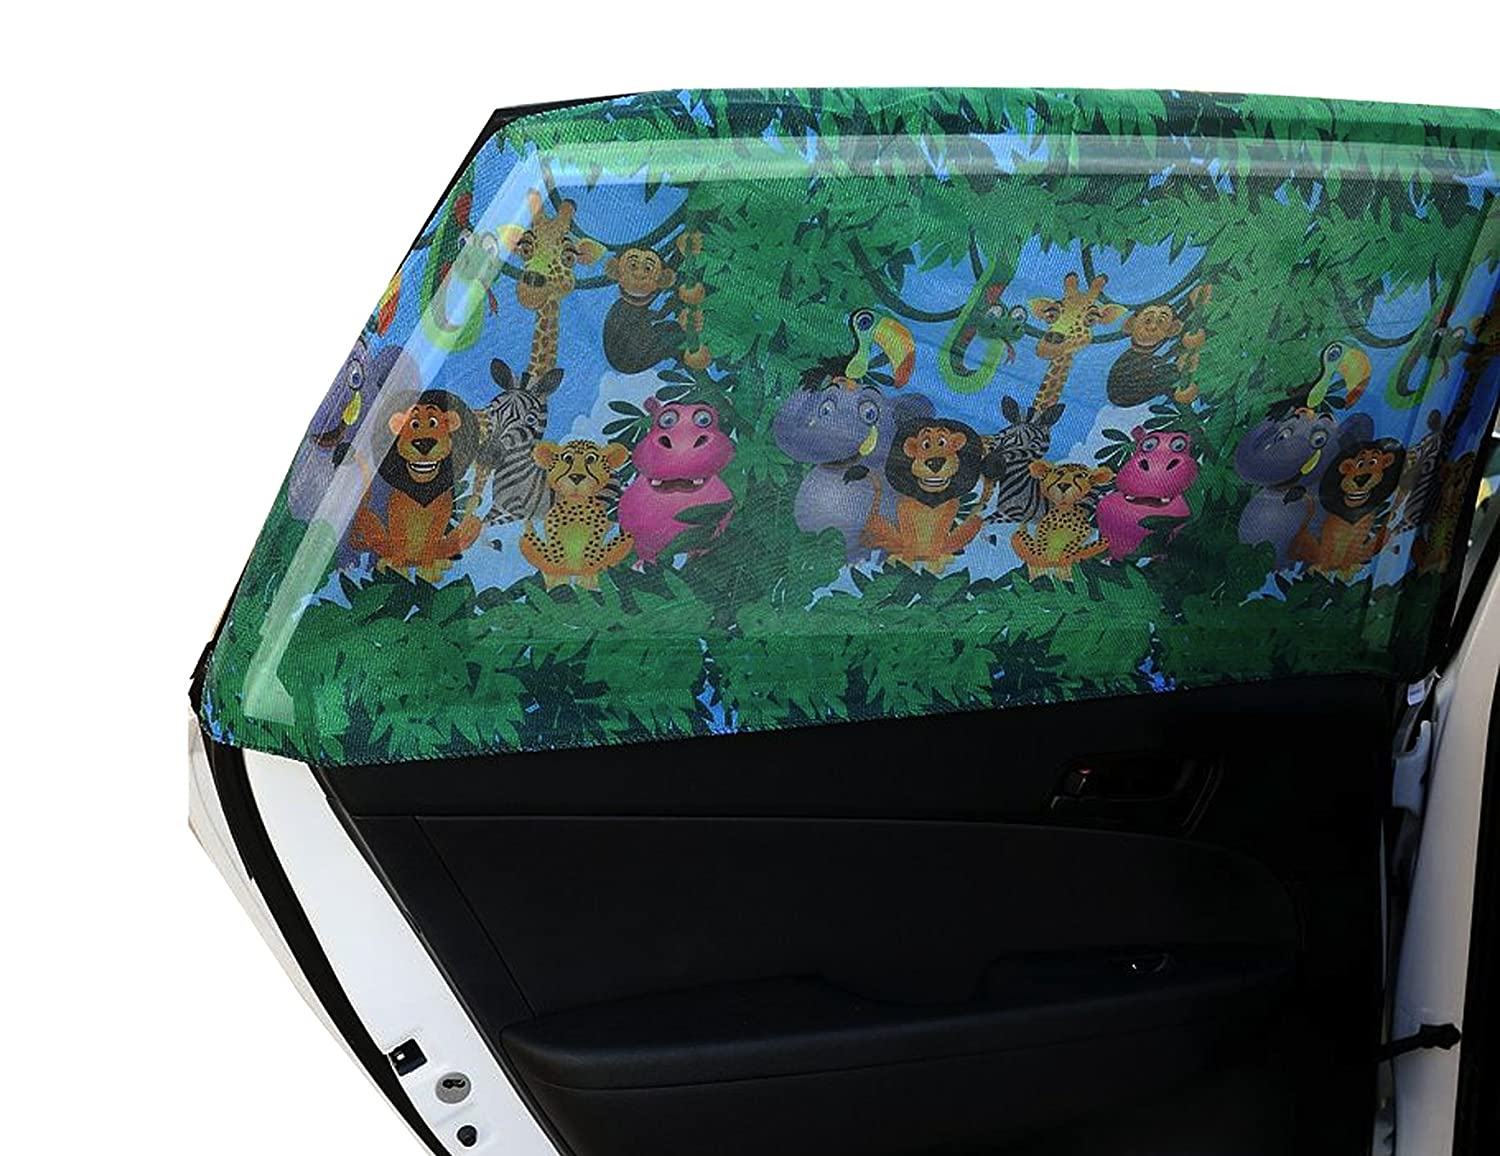 Auto sun screen LCC Curved Baby Car Sunshades with Animals for Rear Side Window Large Set of 2